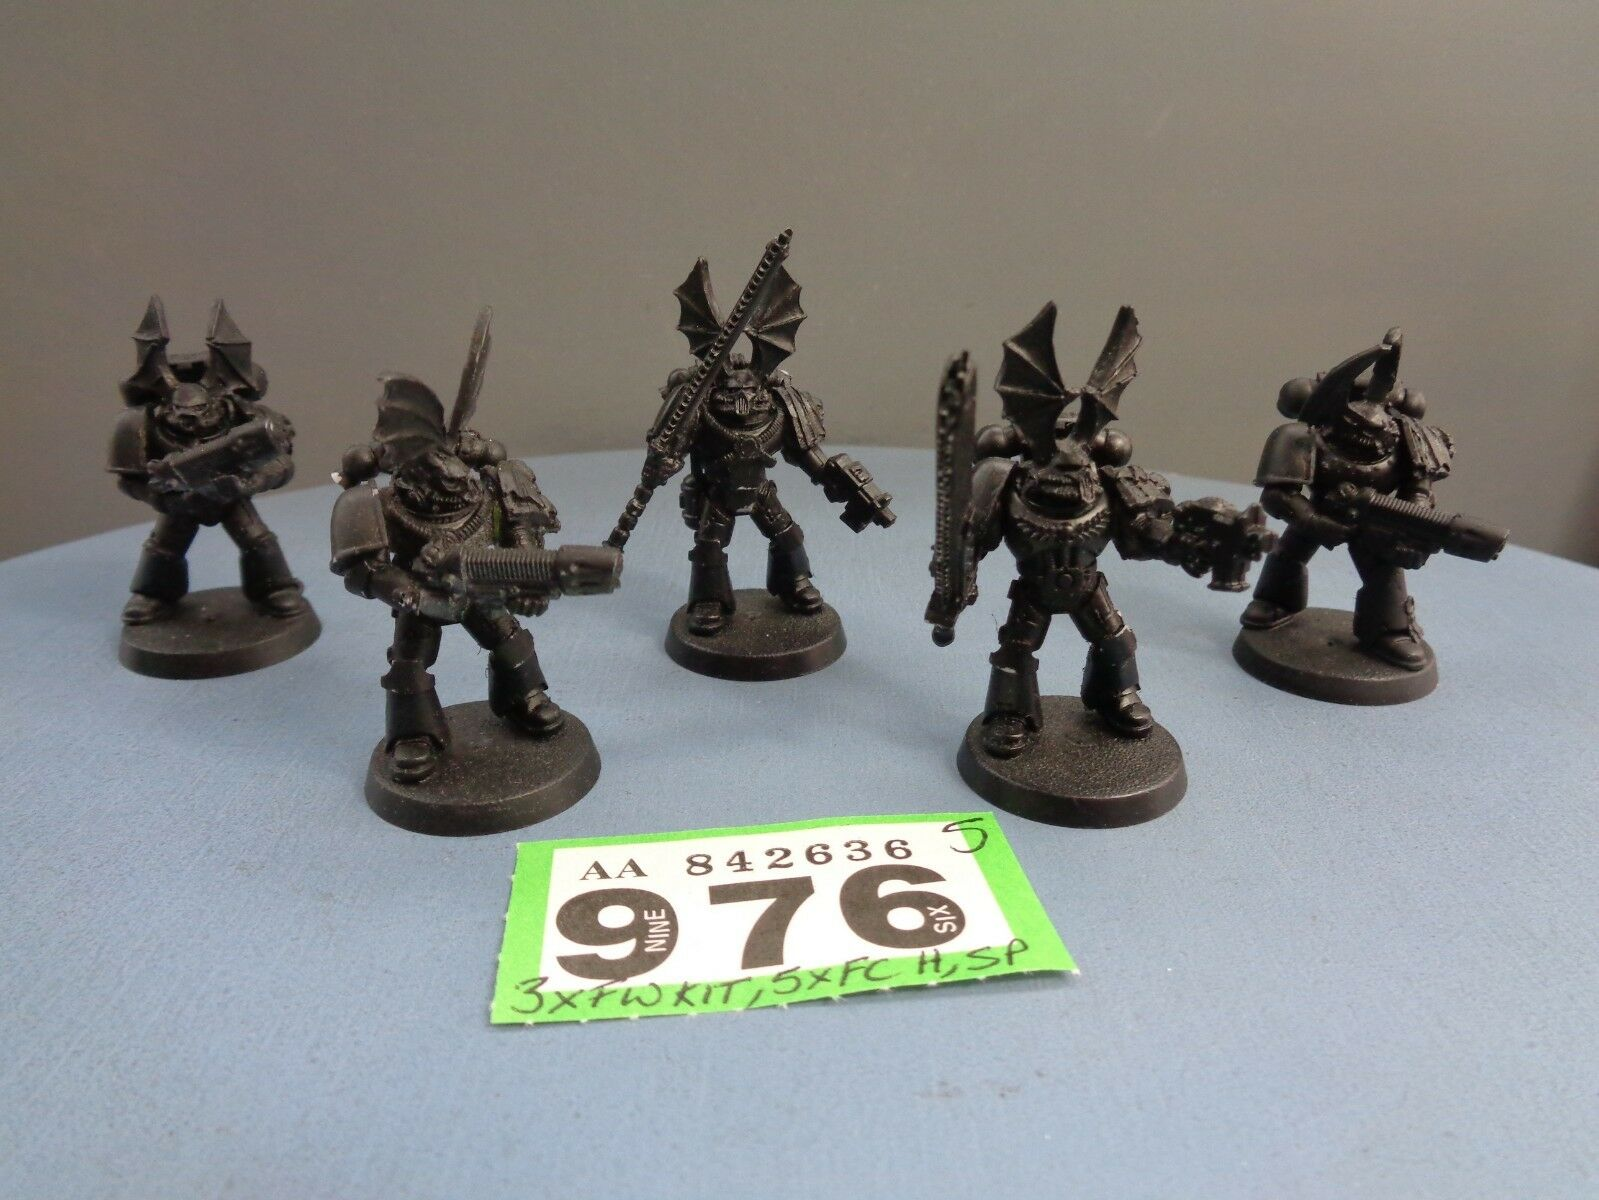 Warhammer 30,000 40,000 Space Marines Forge World Parts Night Lords Squad 976